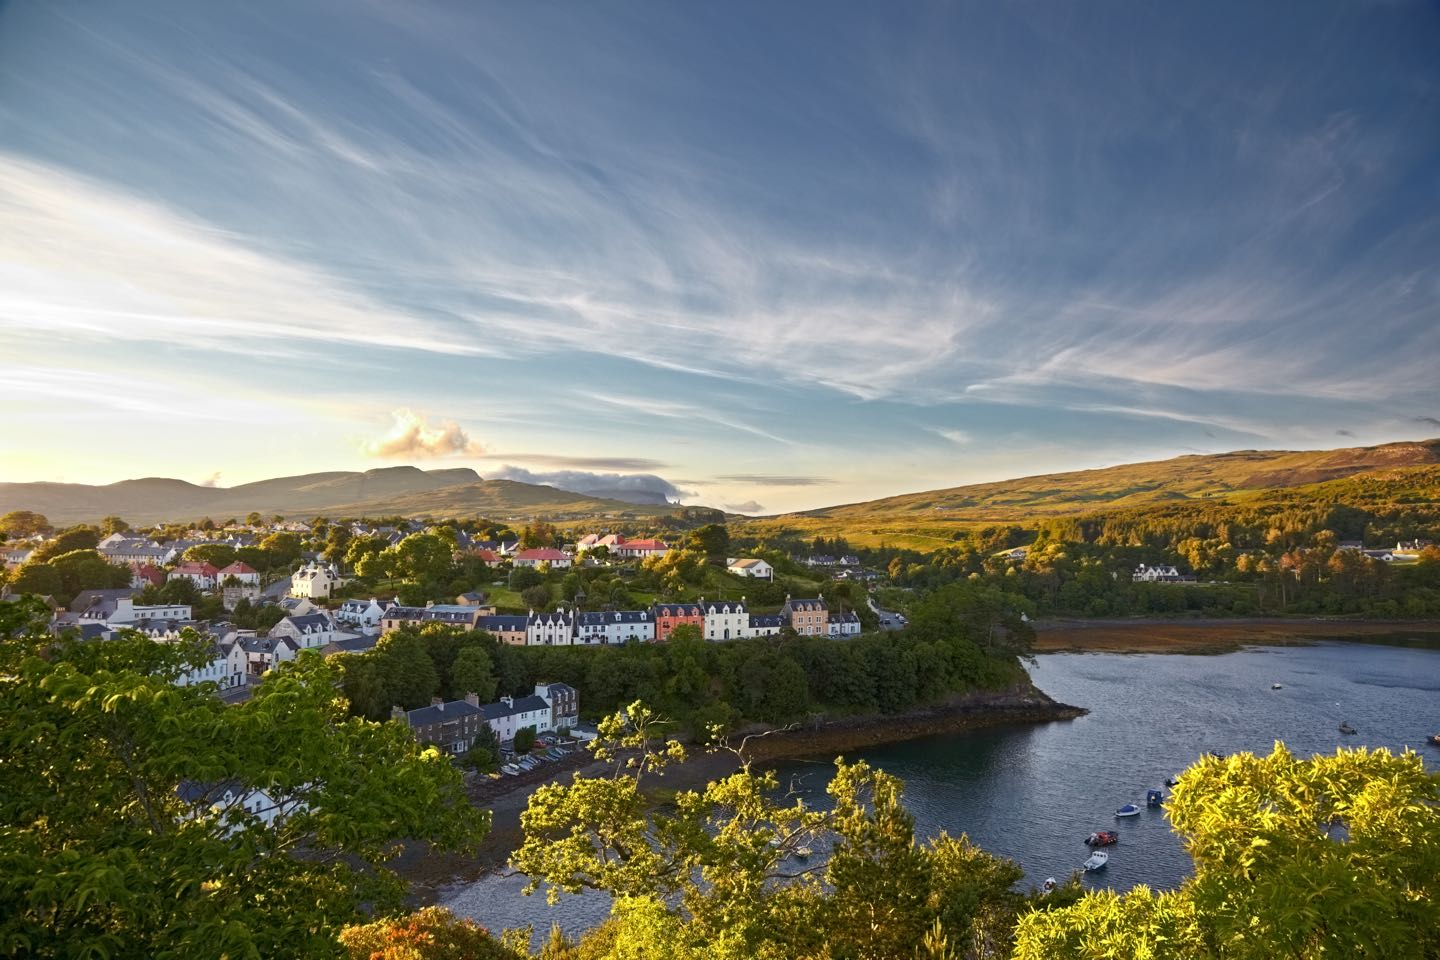 Portree or Port an Righ was previously called Kiltaraglen